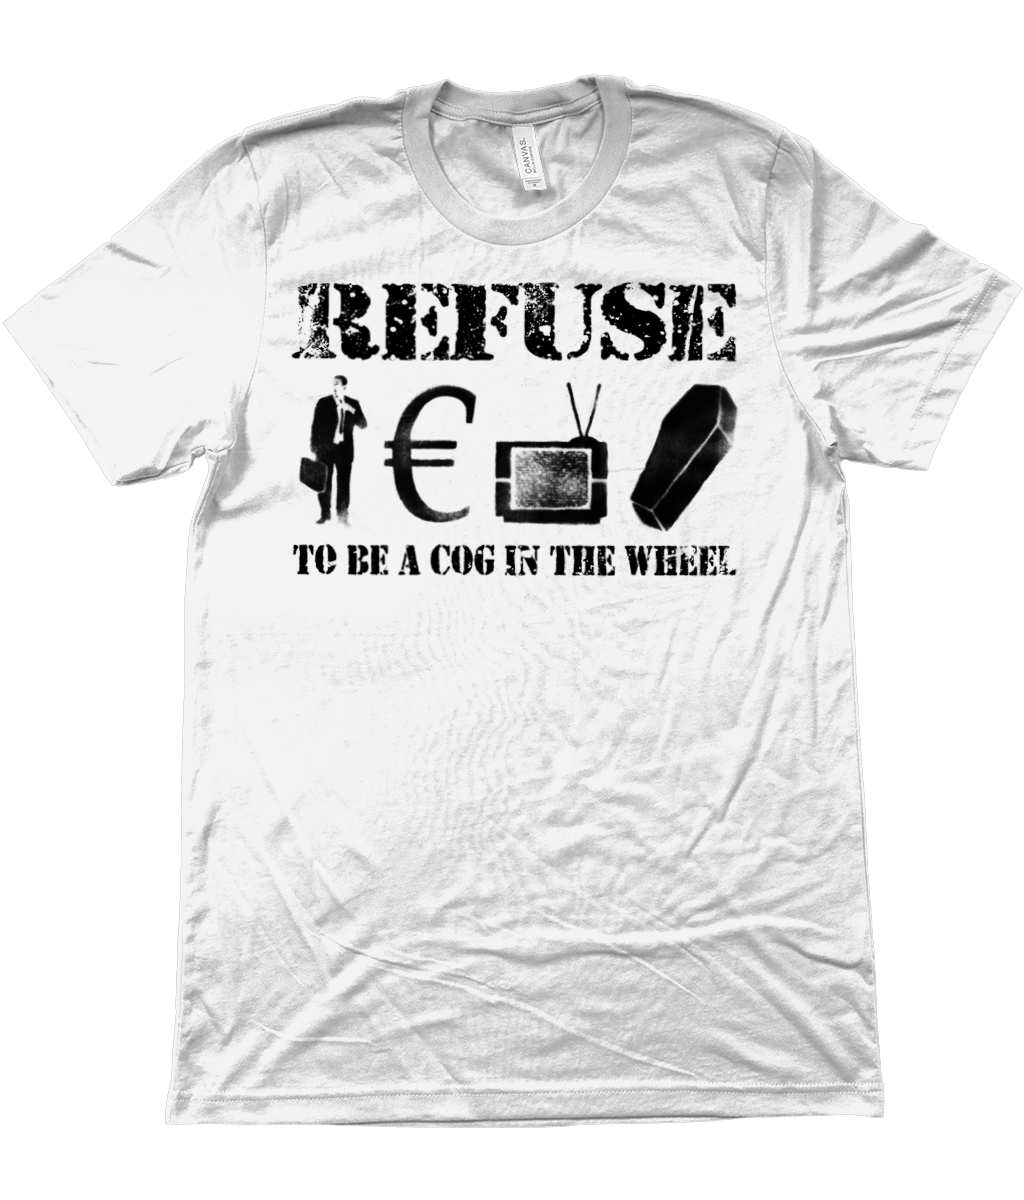 Refuse to be a Cog in the Wheel (Black Print)